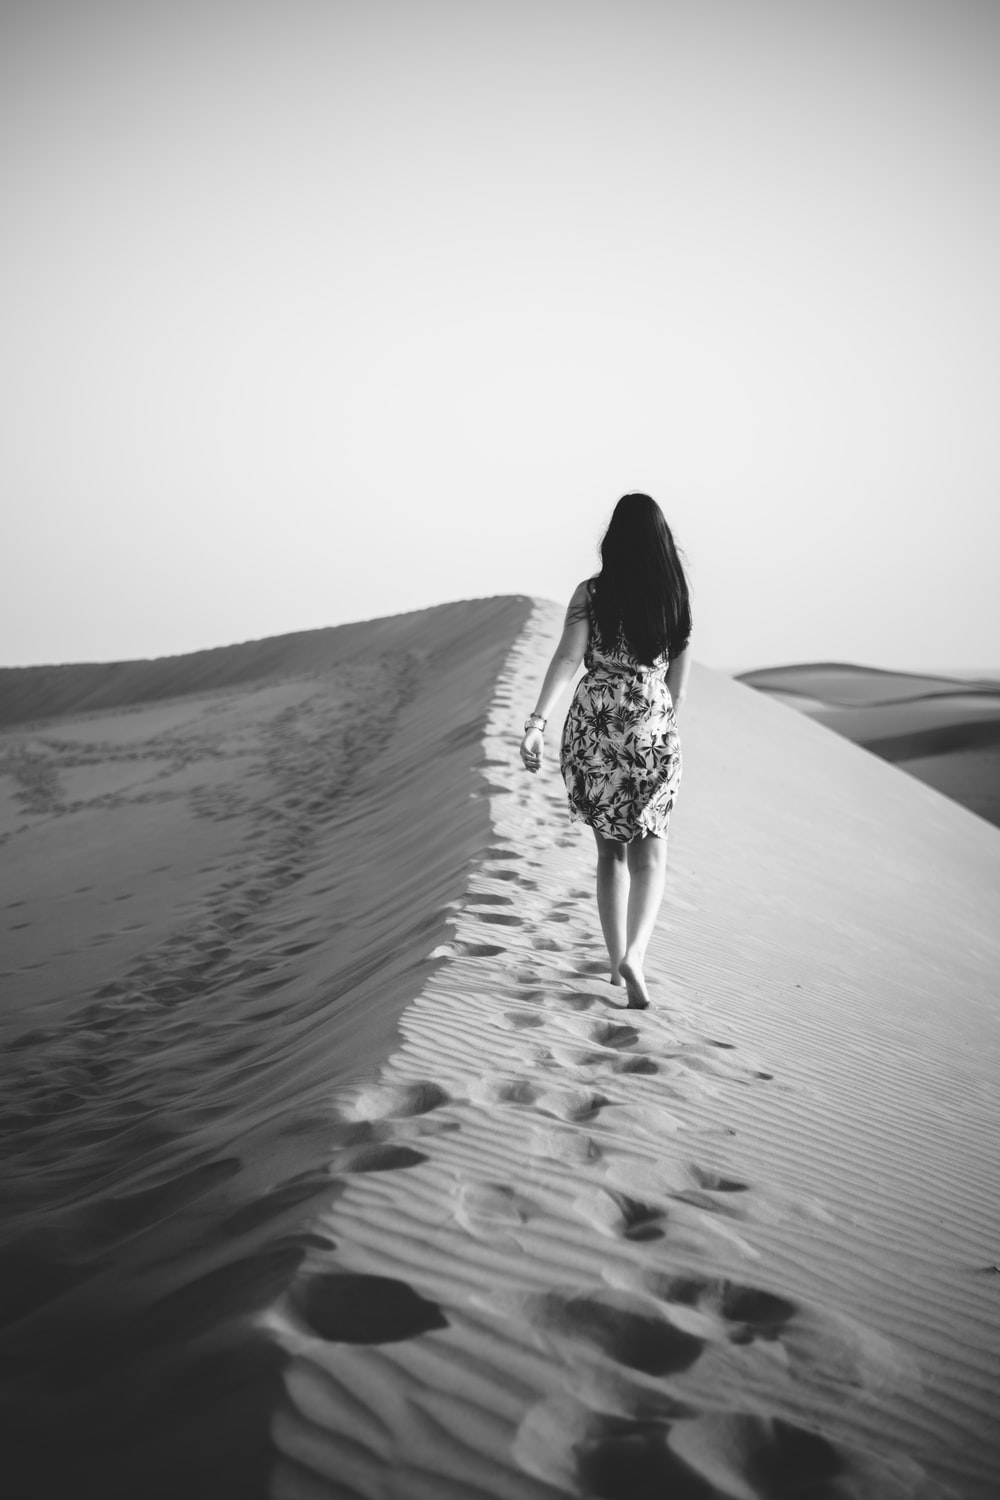 grayscale photo of woman walking on desert at daytime